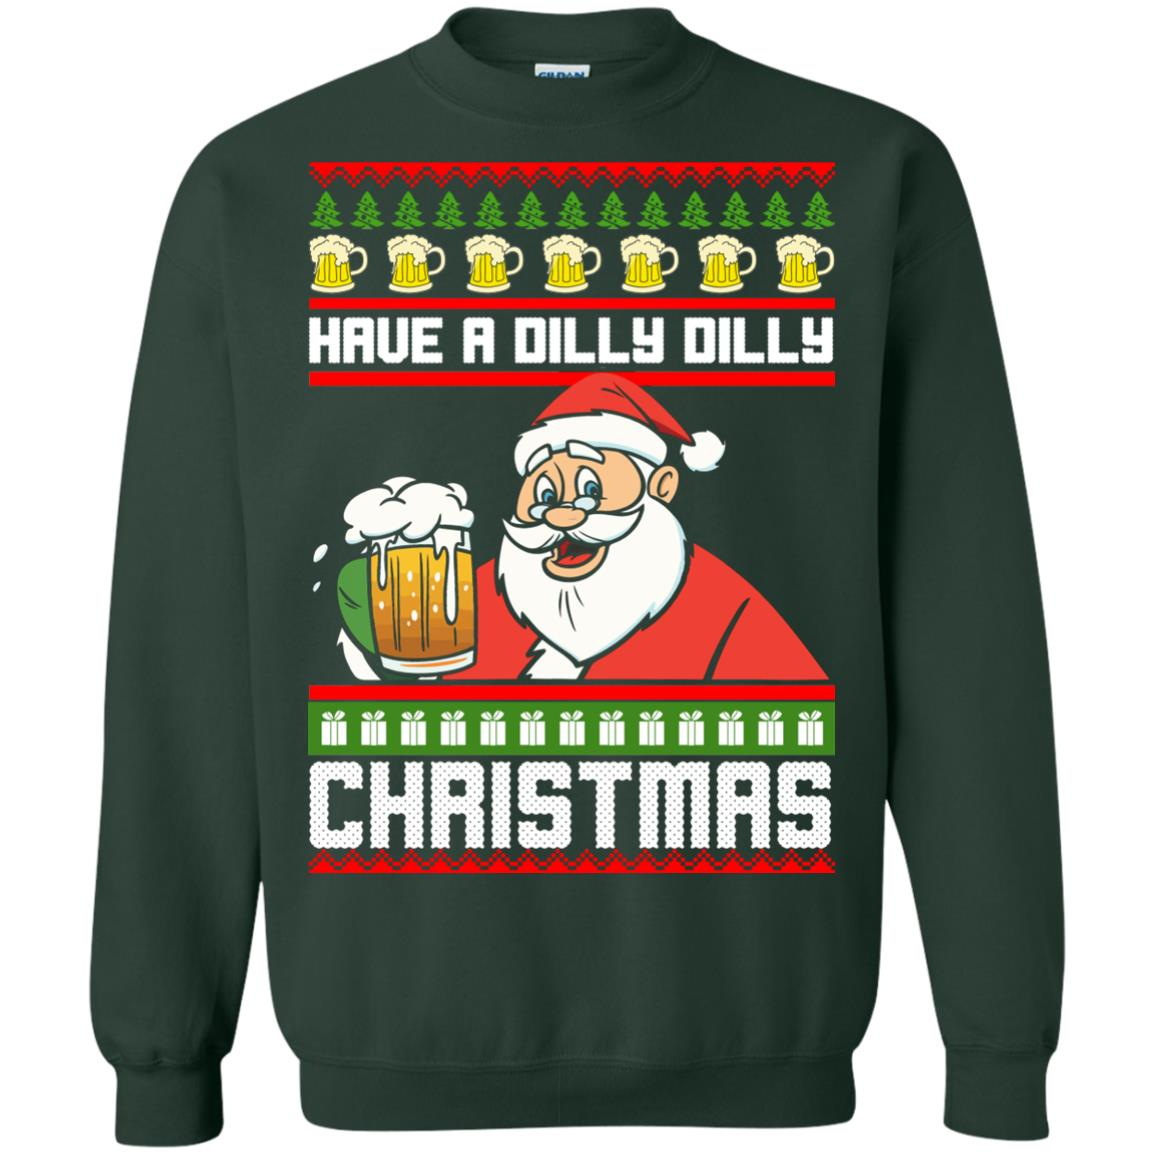 image 6135 - Have a Dilly Dilly Christmas Ugly Sweatshirt, Long Sleeve